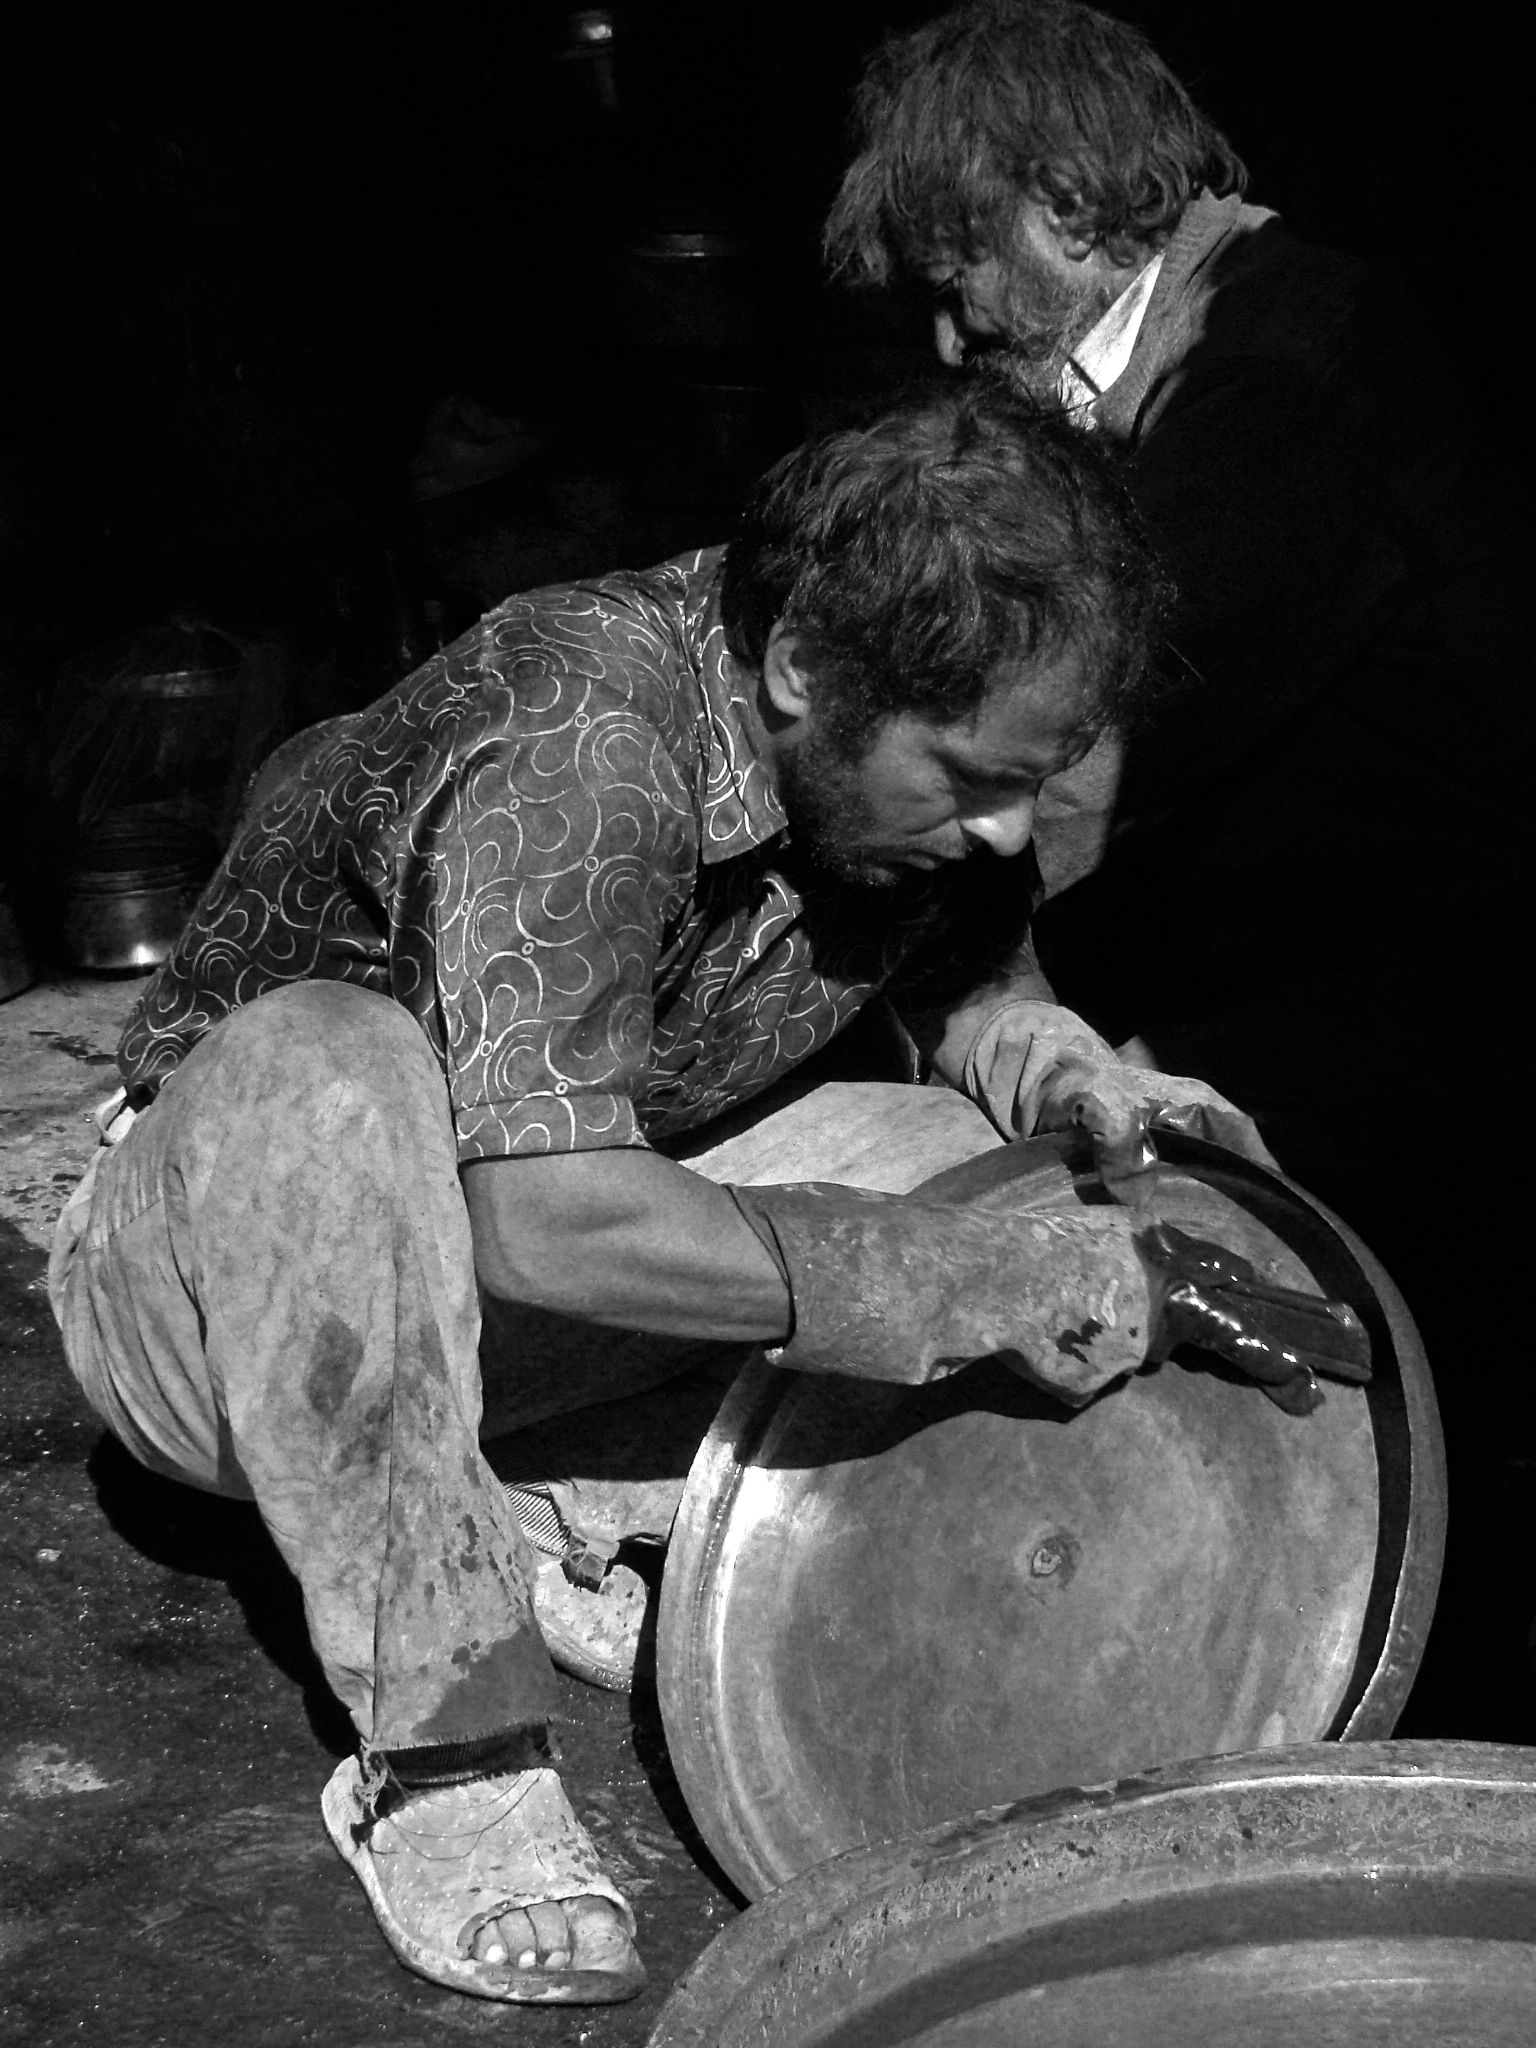 Coppersmith by asghar asem